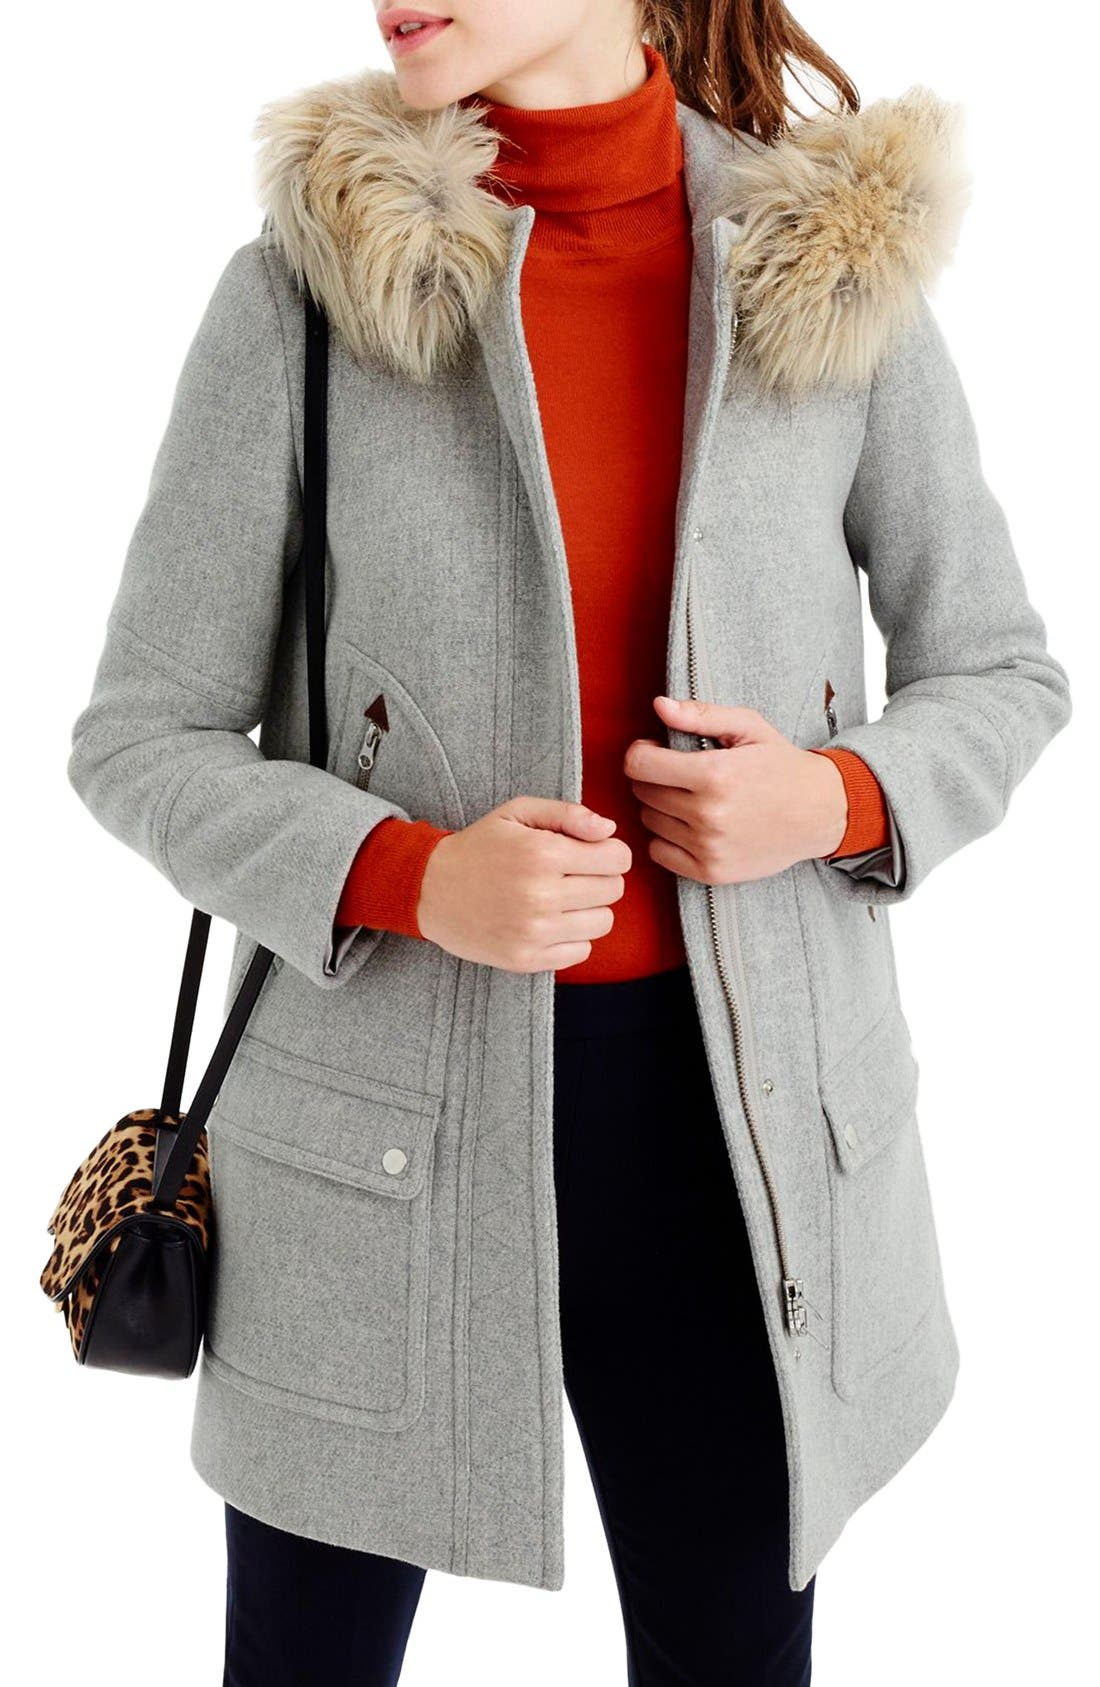 Main Image - J.Crew Chateau Stadium Cloth Parka with Faux Fur (Regular & Petite)